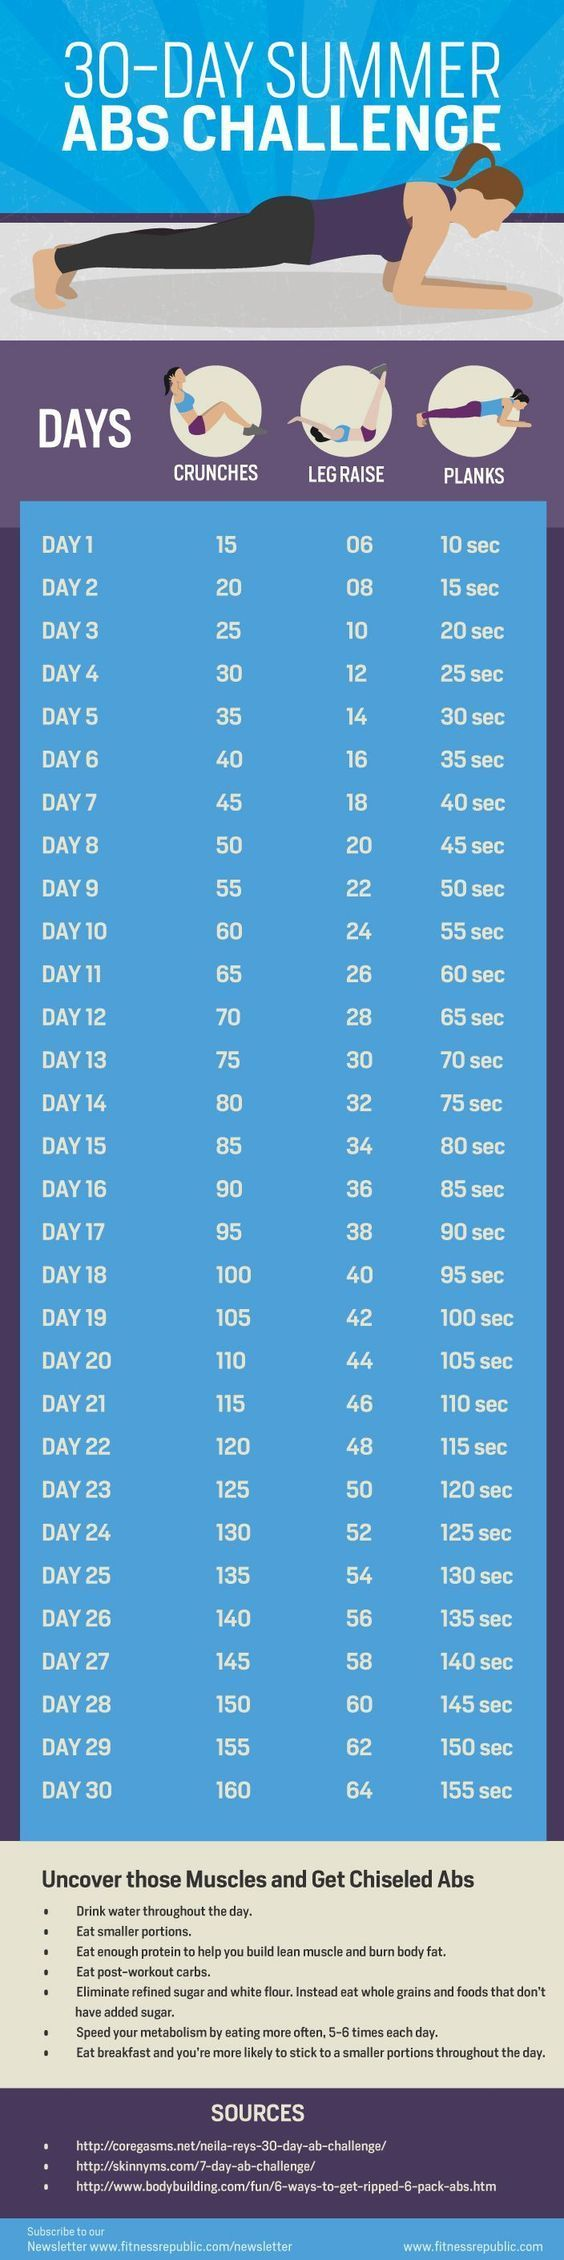 30-Day Summer Abs Challenge #fitness #abs #workout: